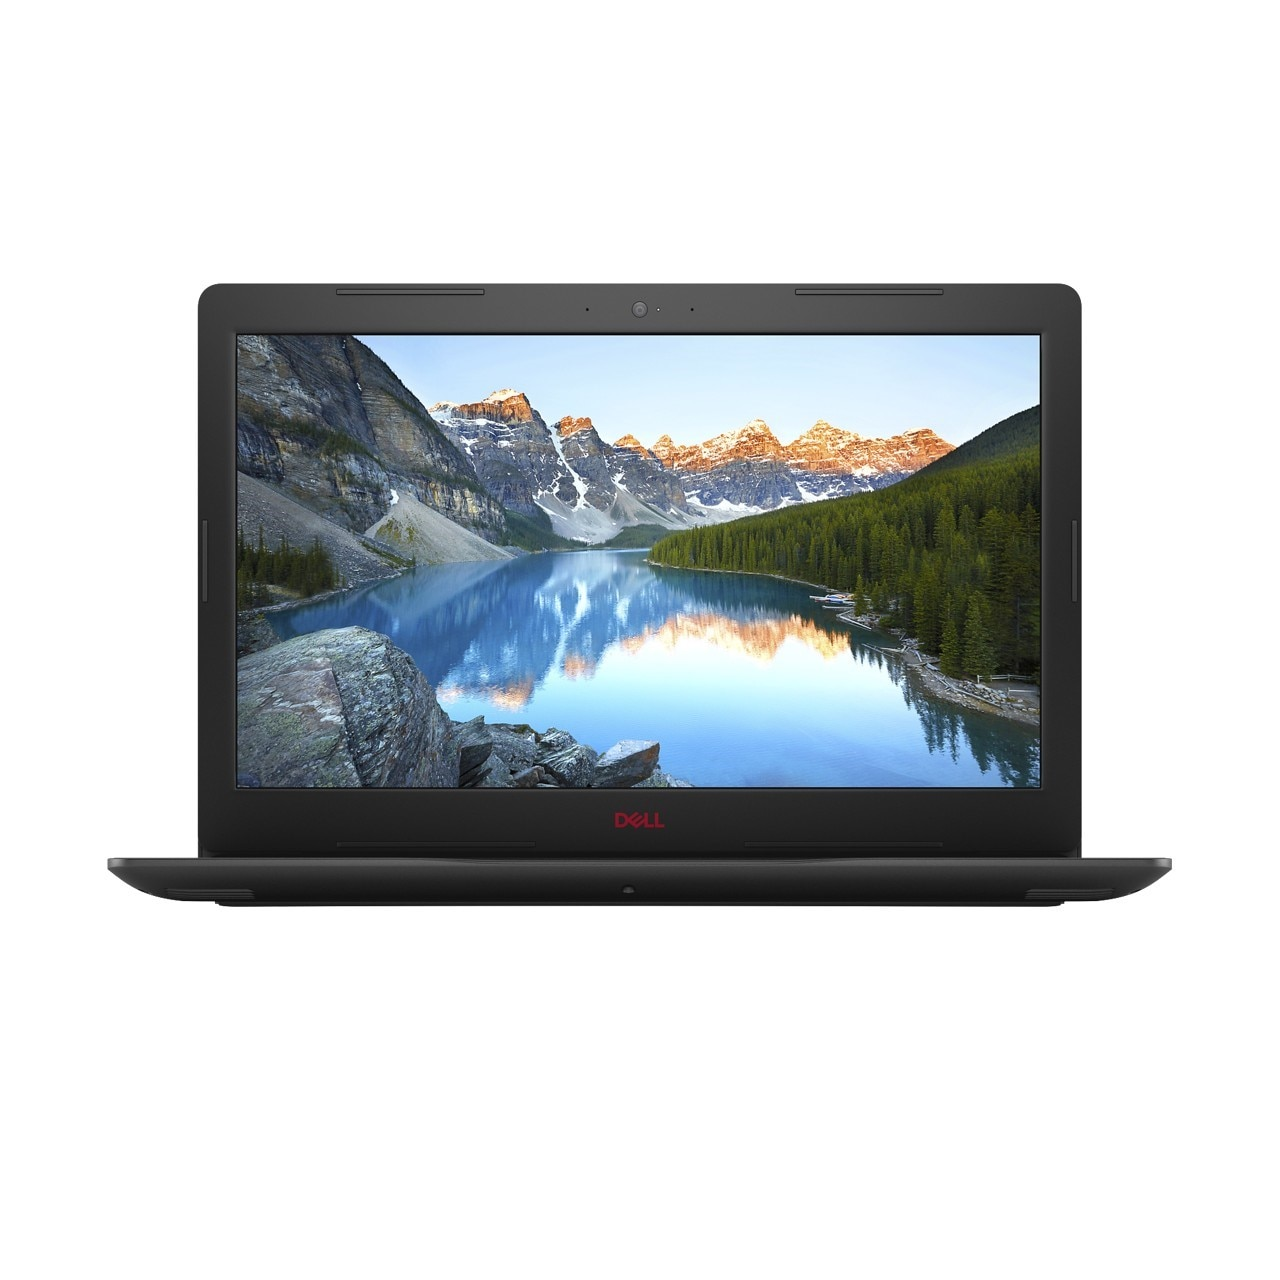 Dell G3 15 - 3579 Gaming Laptop